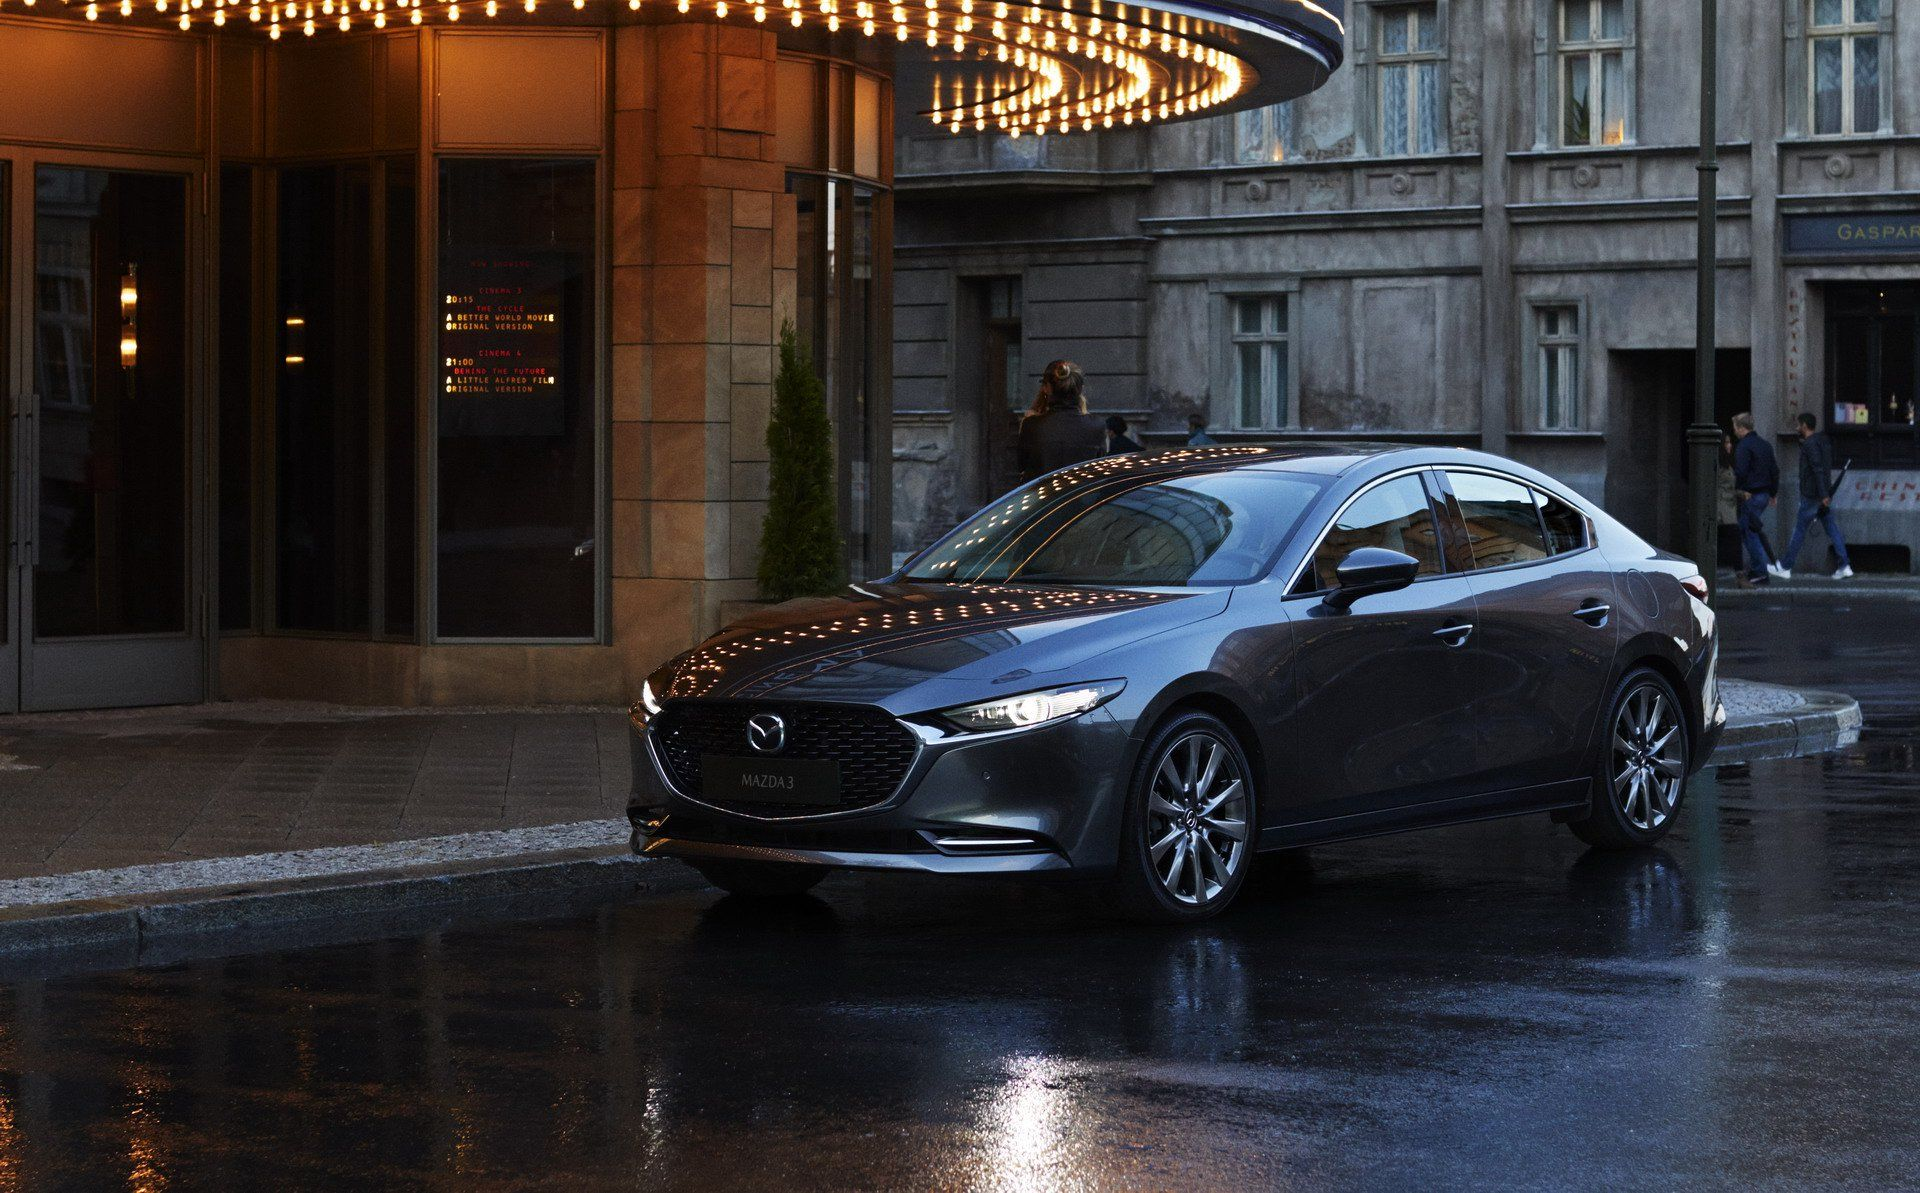 New 2019 Mazda3 Is Definitely A Looker See For Yourself In 68 Pictures Carscoops Mazda Sedan Car